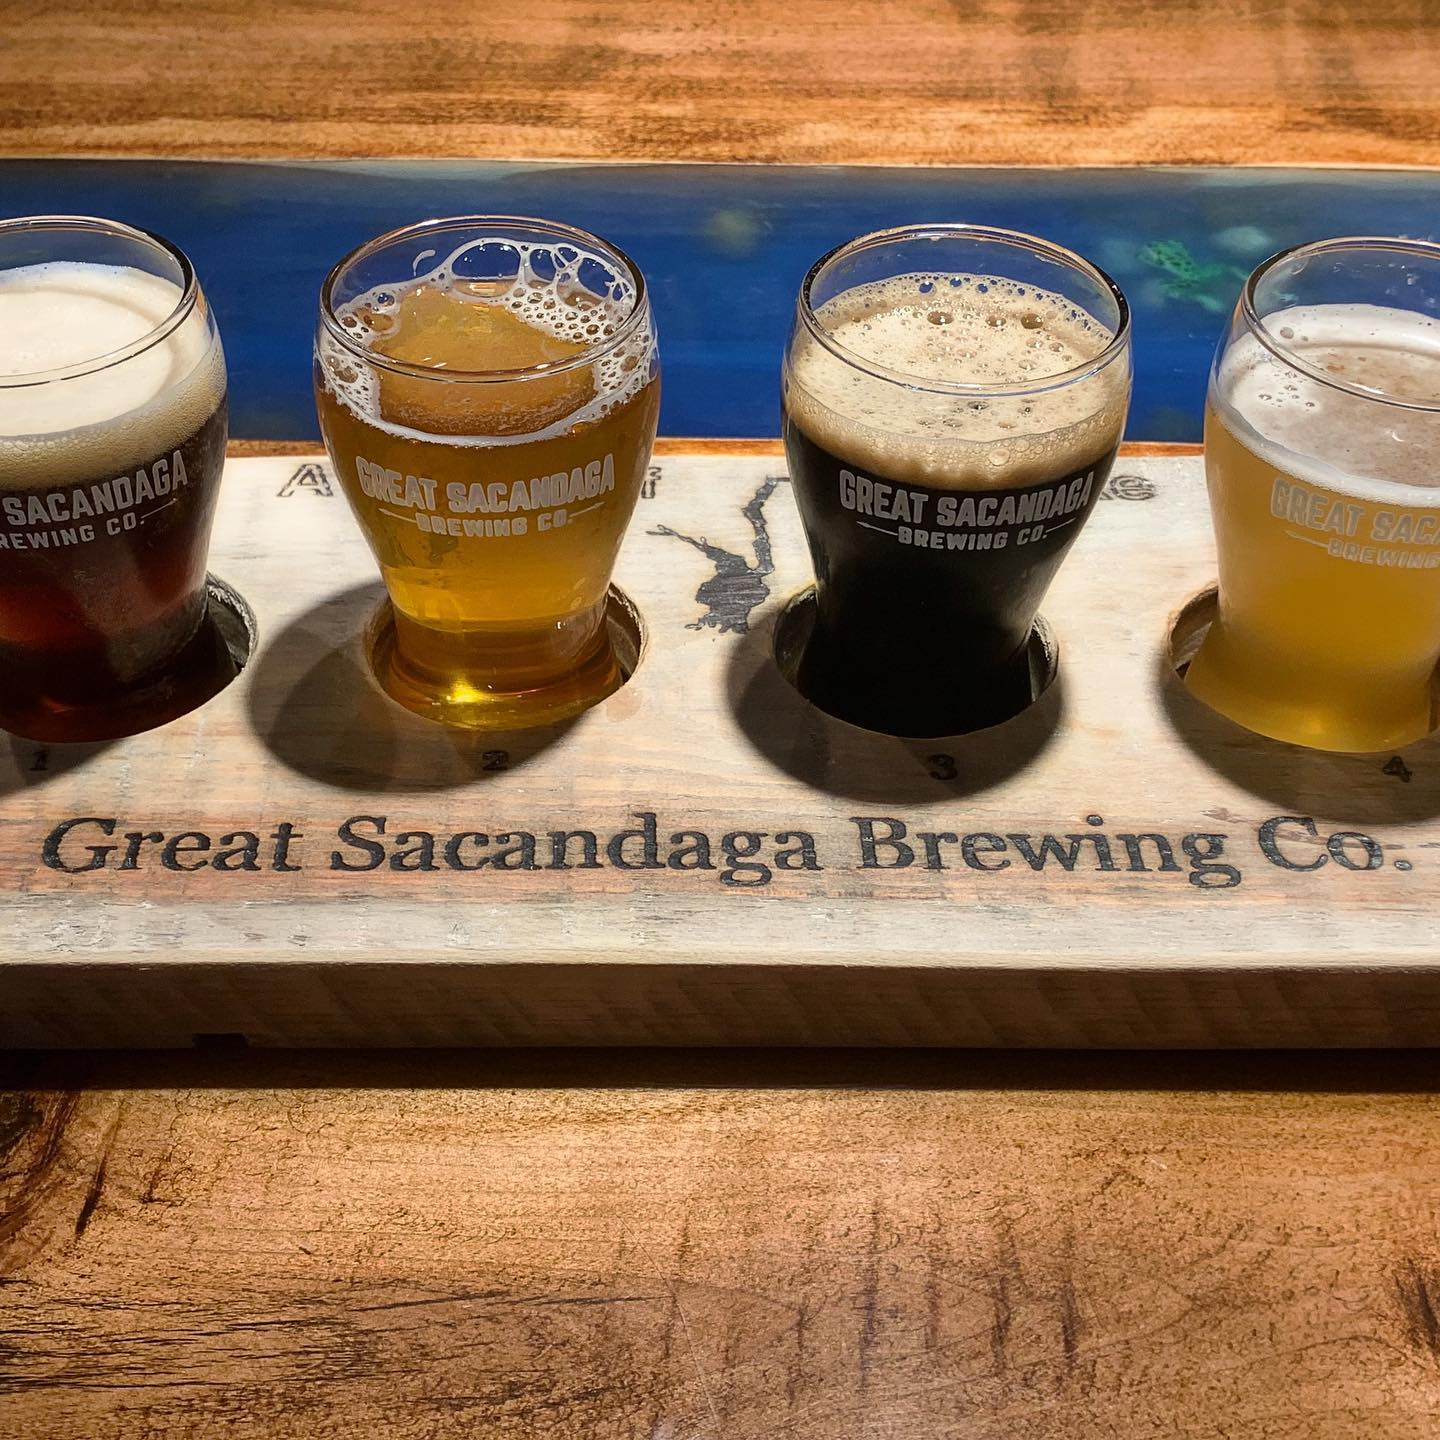 Great Sacandaga Brewing Co.